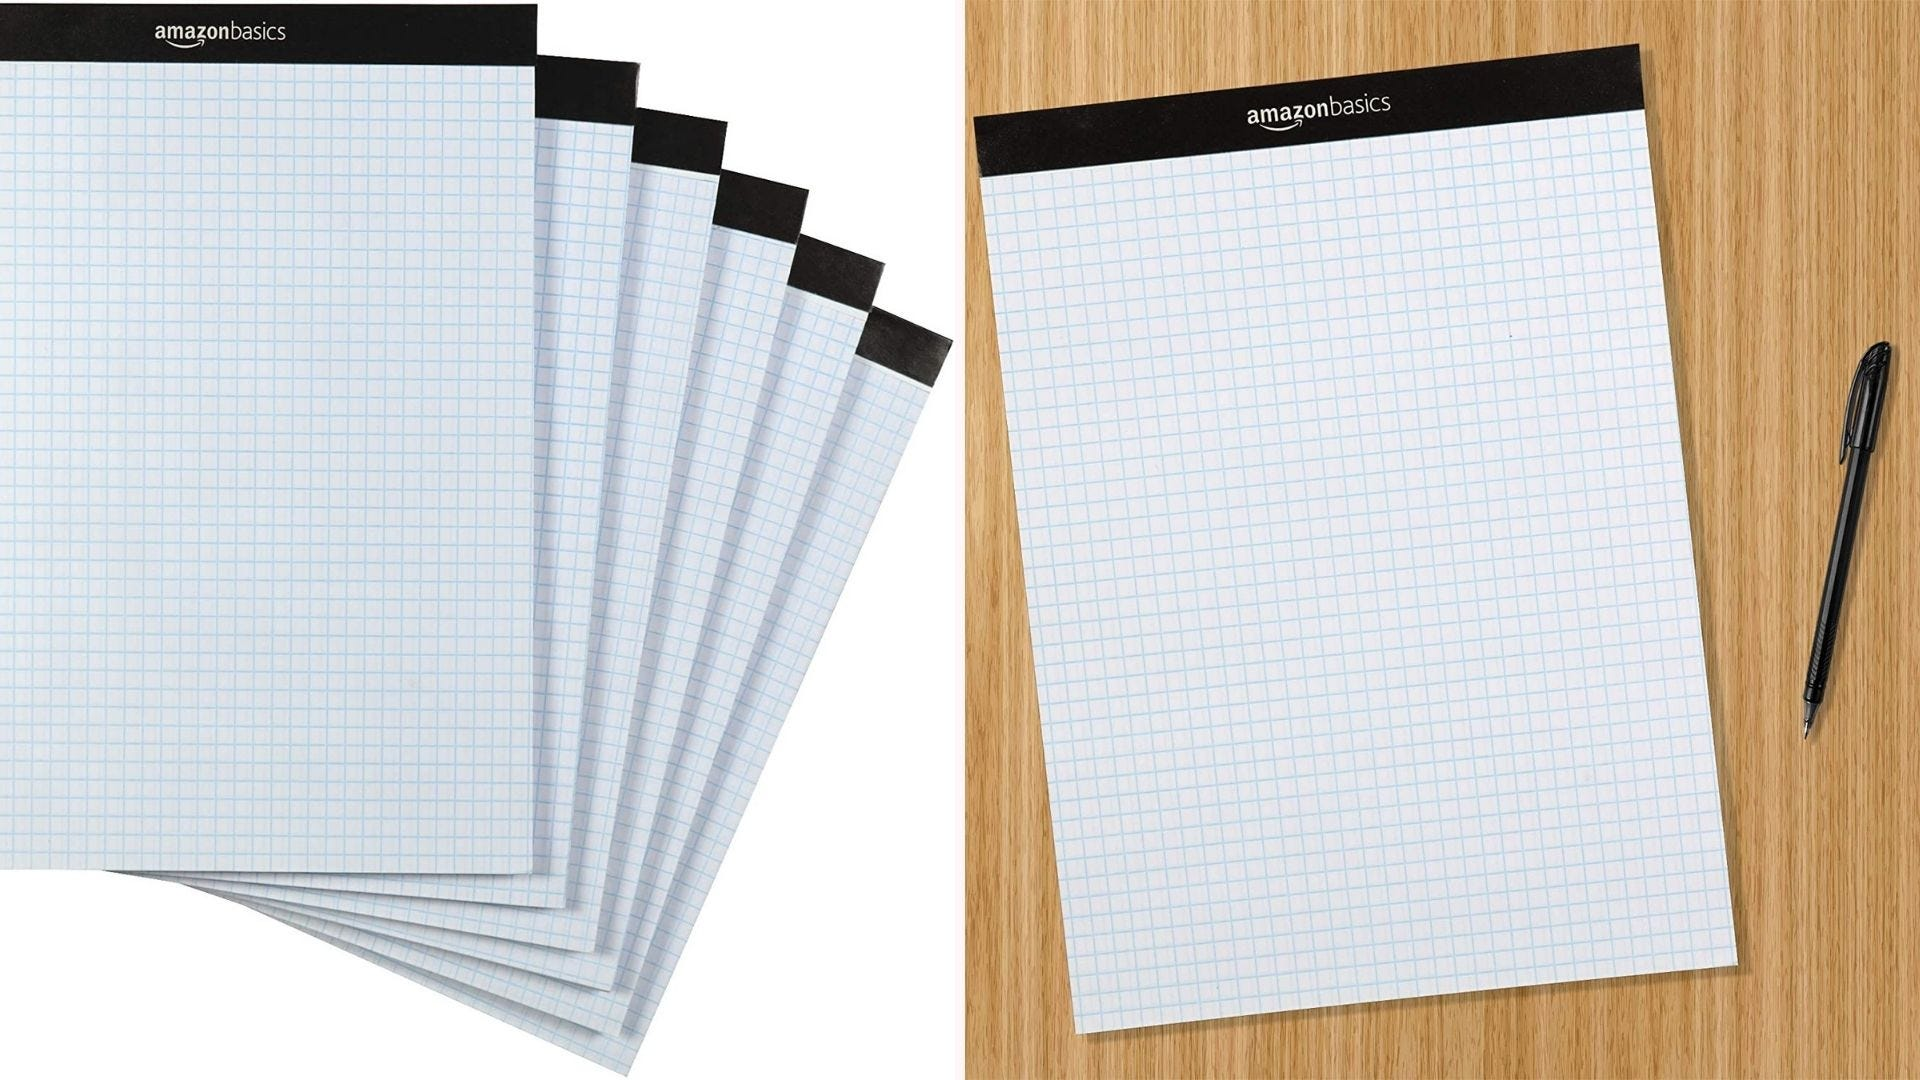 On the left, a stack of six, 100-sheet graph pads that feature a perforated seal at the top. On the left, a single graph pad lies on a desk next to a pen.